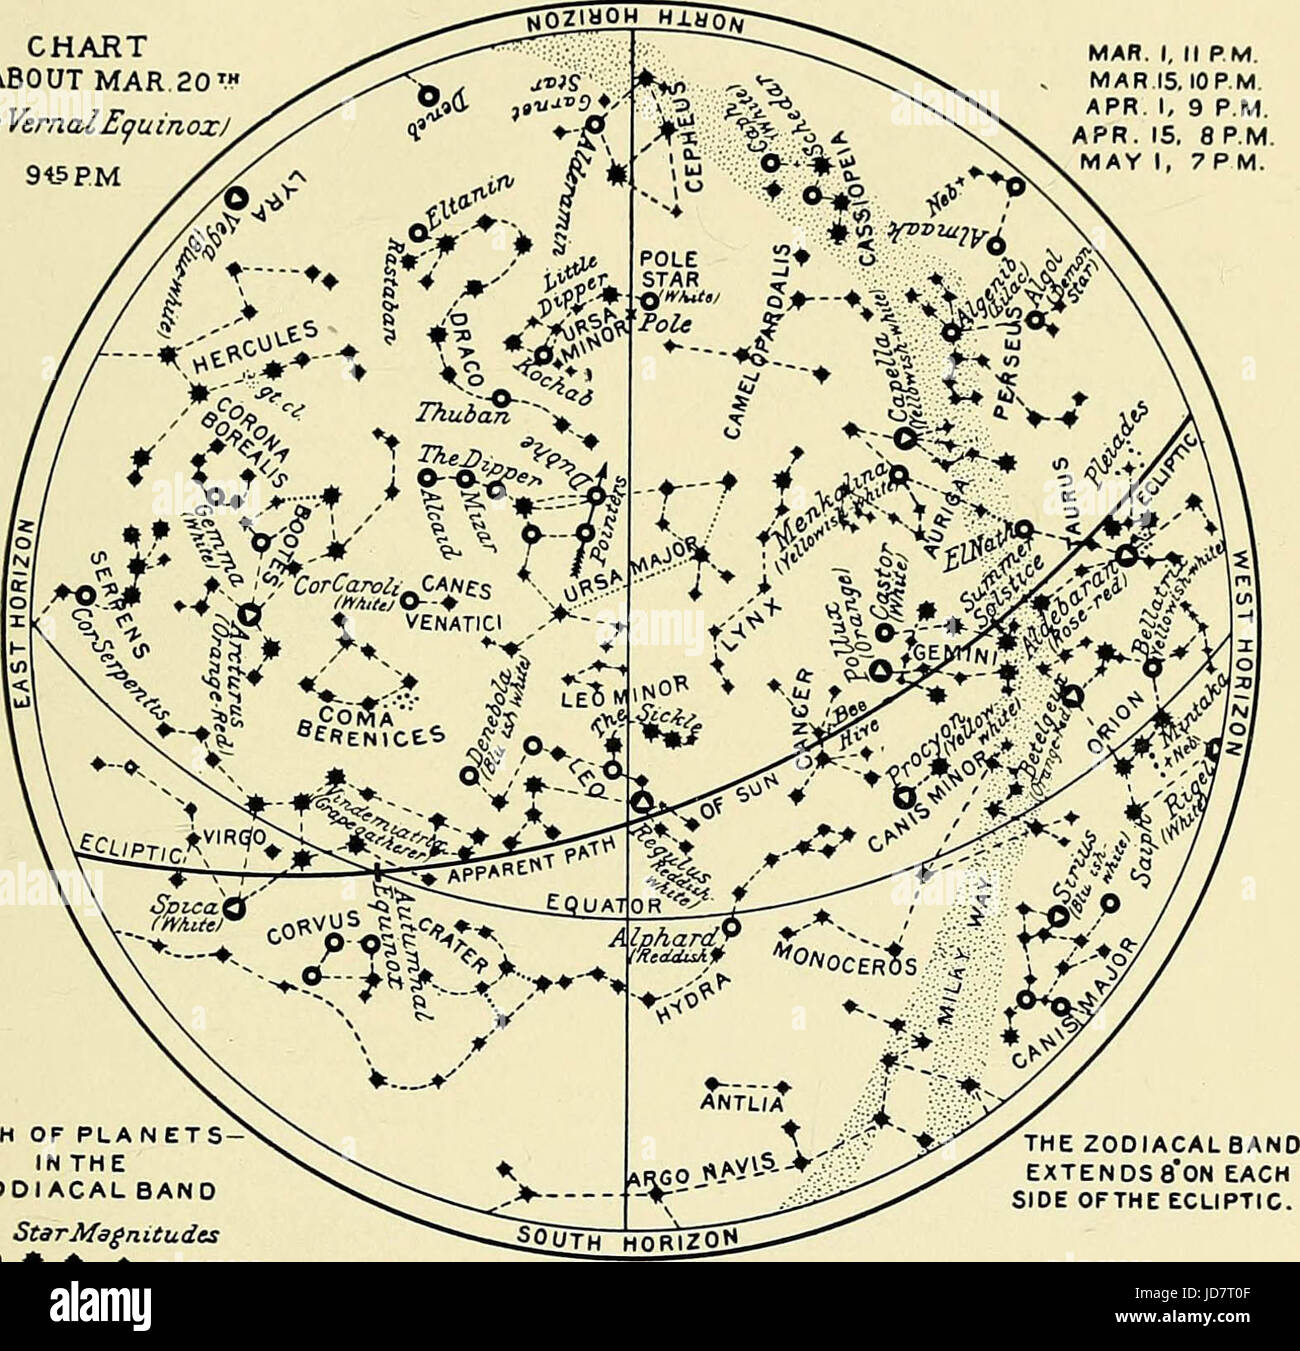 'The book of stars; being a simple explanation of the stars and their uses to boy life, written to conform to - Stock Image